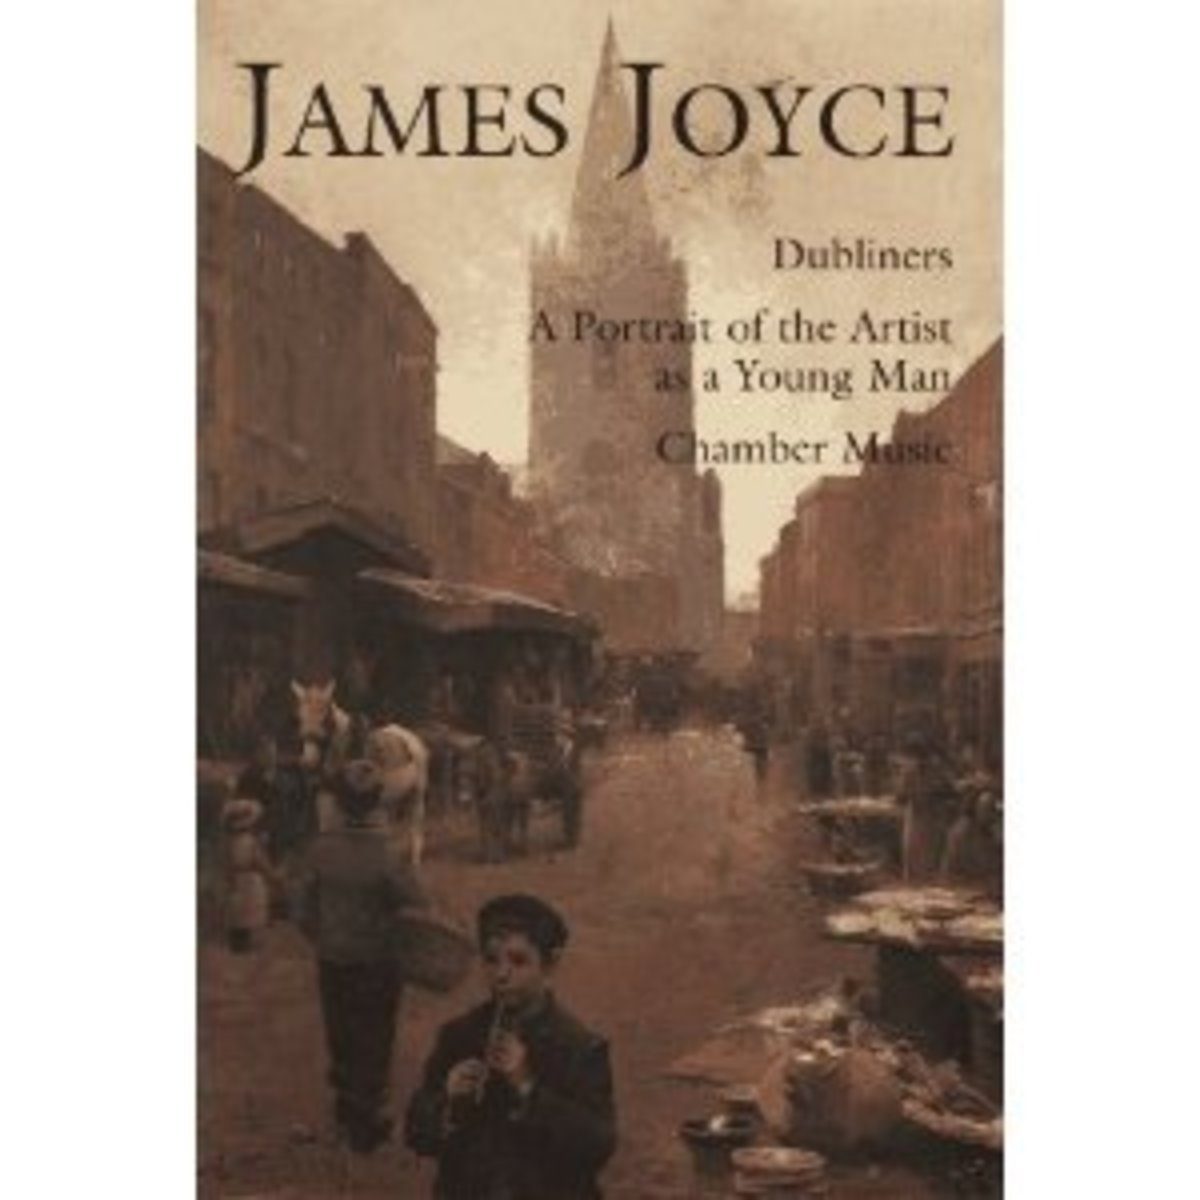 James Joyce's Dubliners